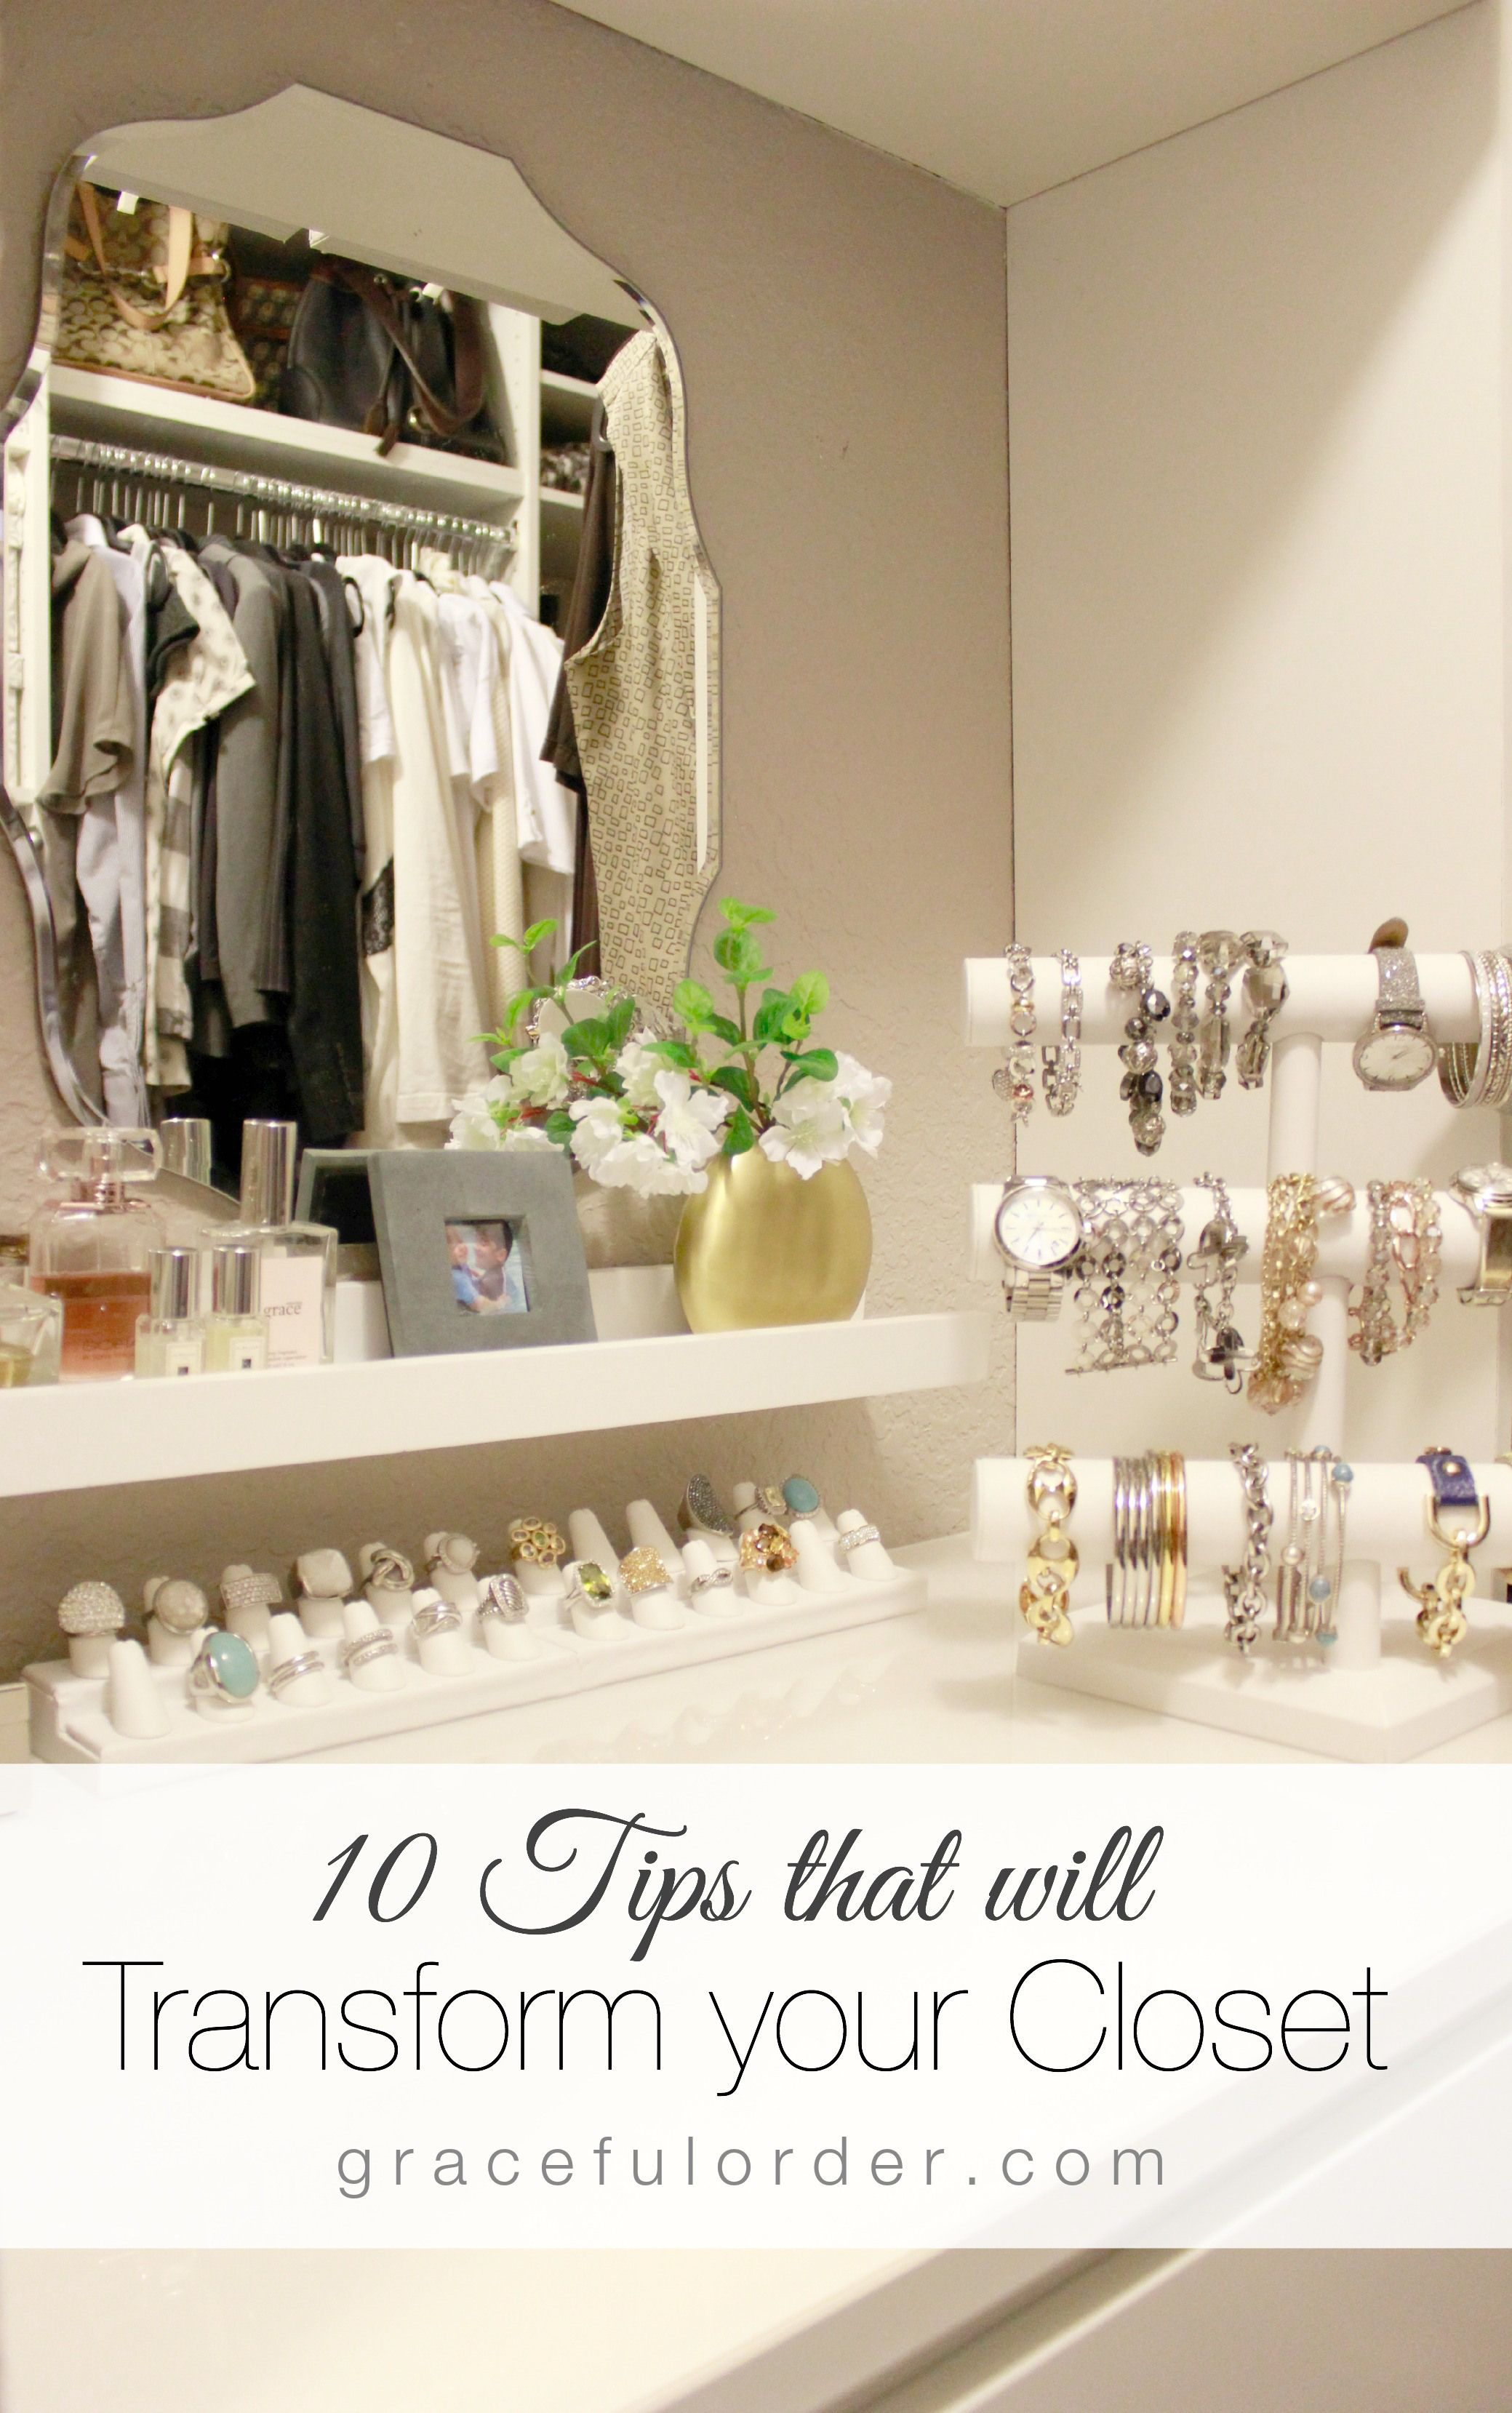 I love this beautiful small walk in closet Especially her use of jewelry displays to organize